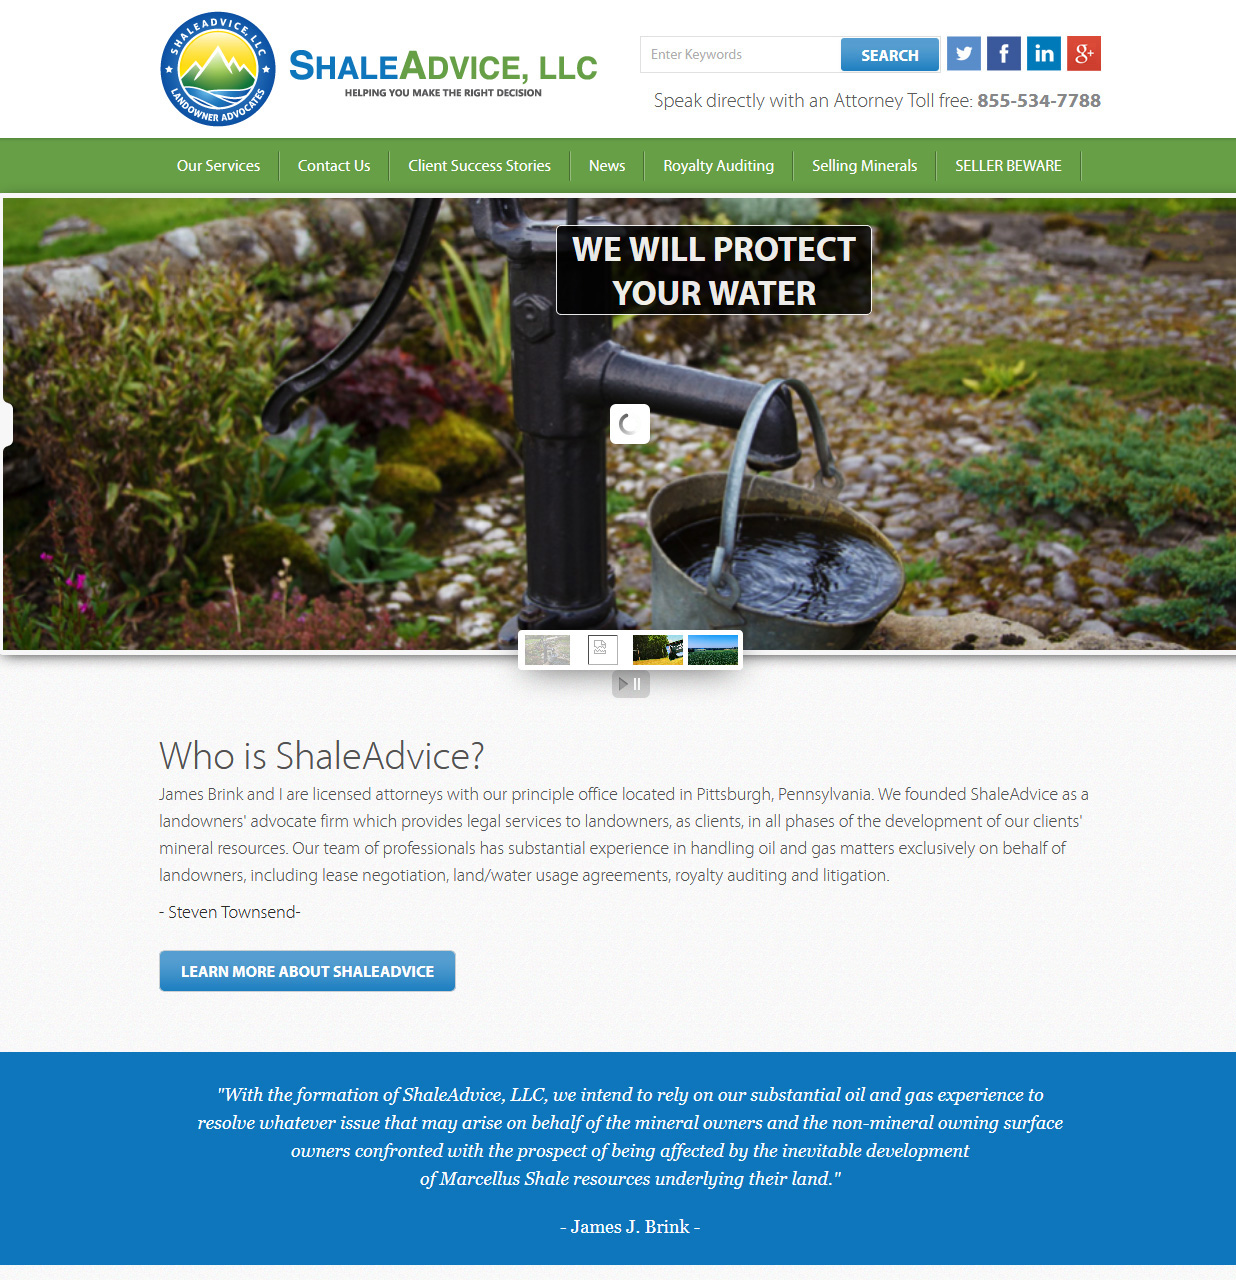 Shale Advice, LLC Lawyers website design